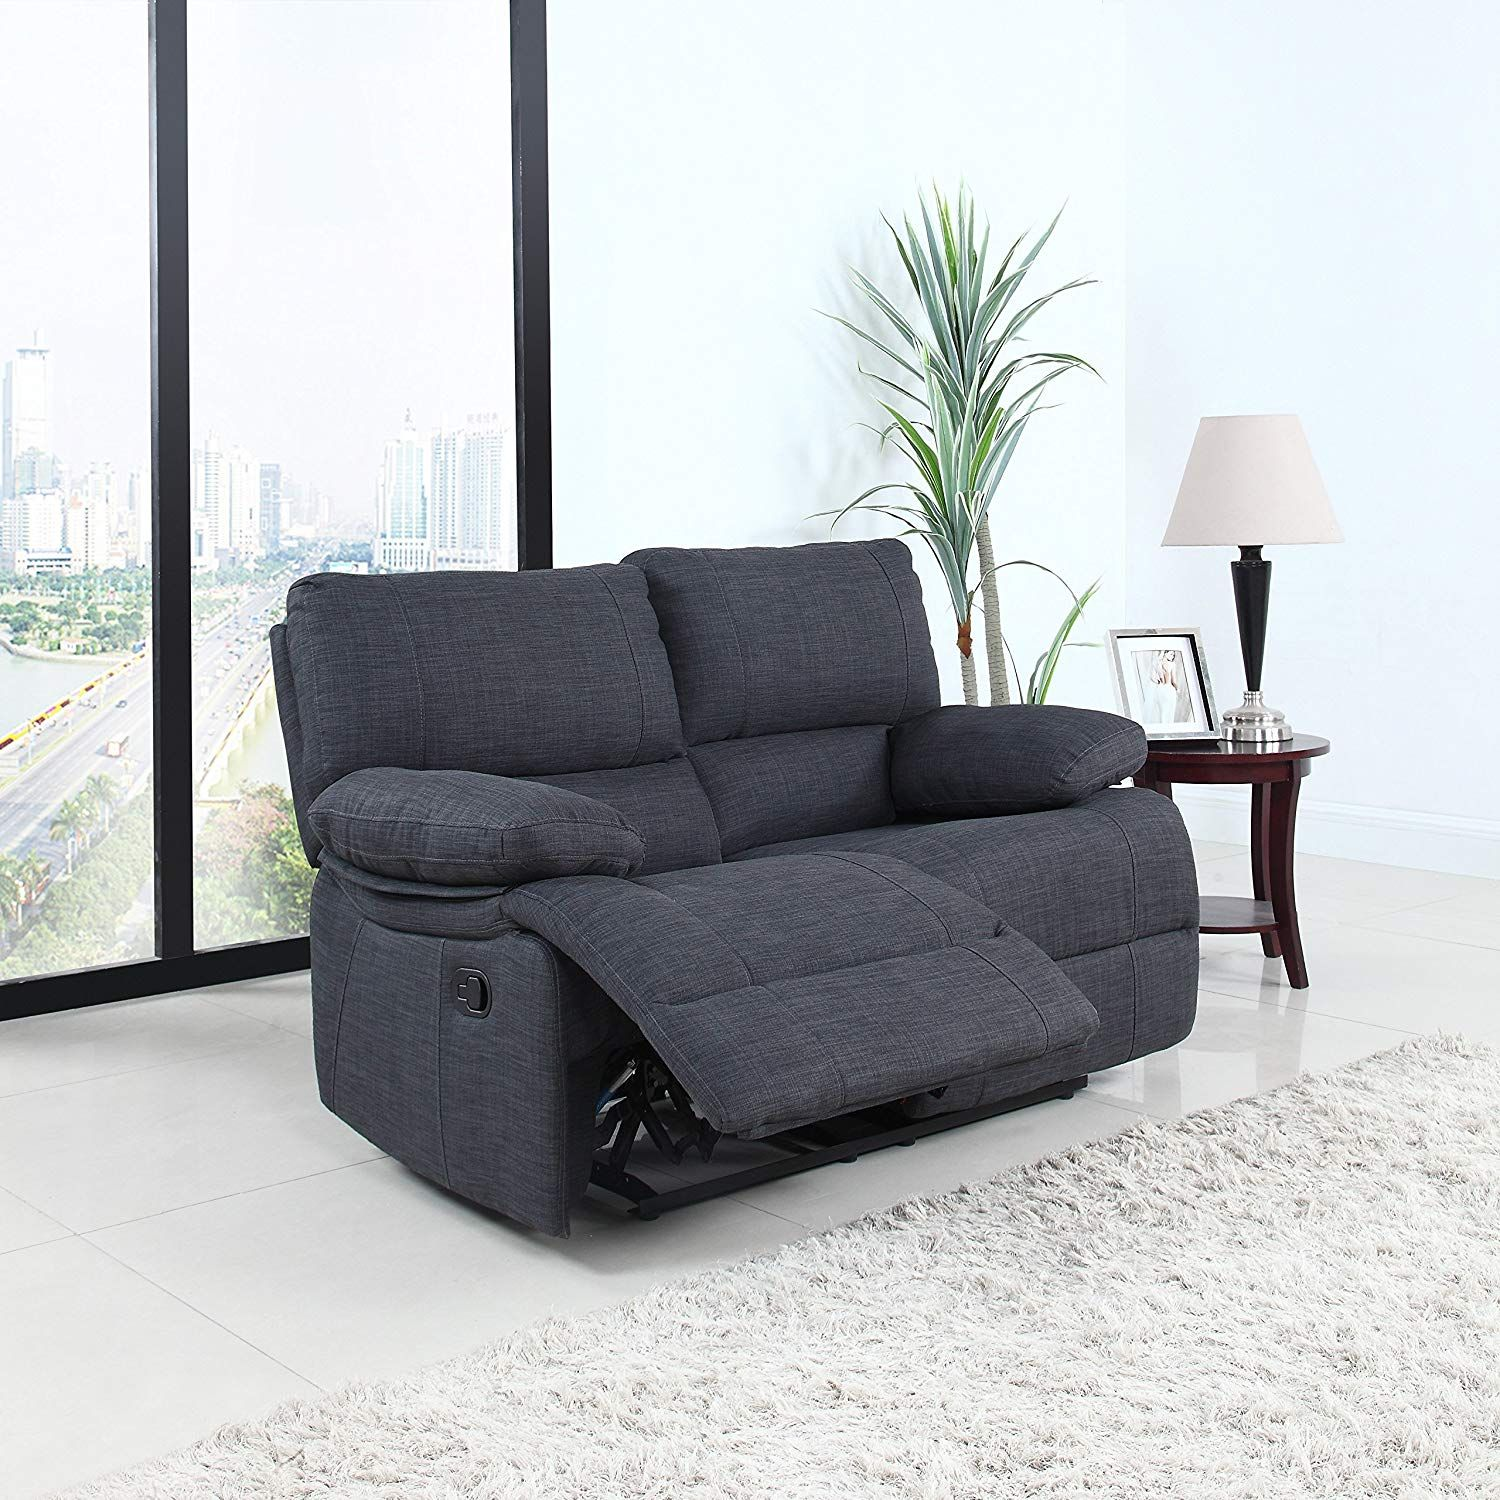 Astounding 25 Cheap Recliner Sofa Sets That Are Available Online Pdpeps Interior Chair Design Pdpepsorg